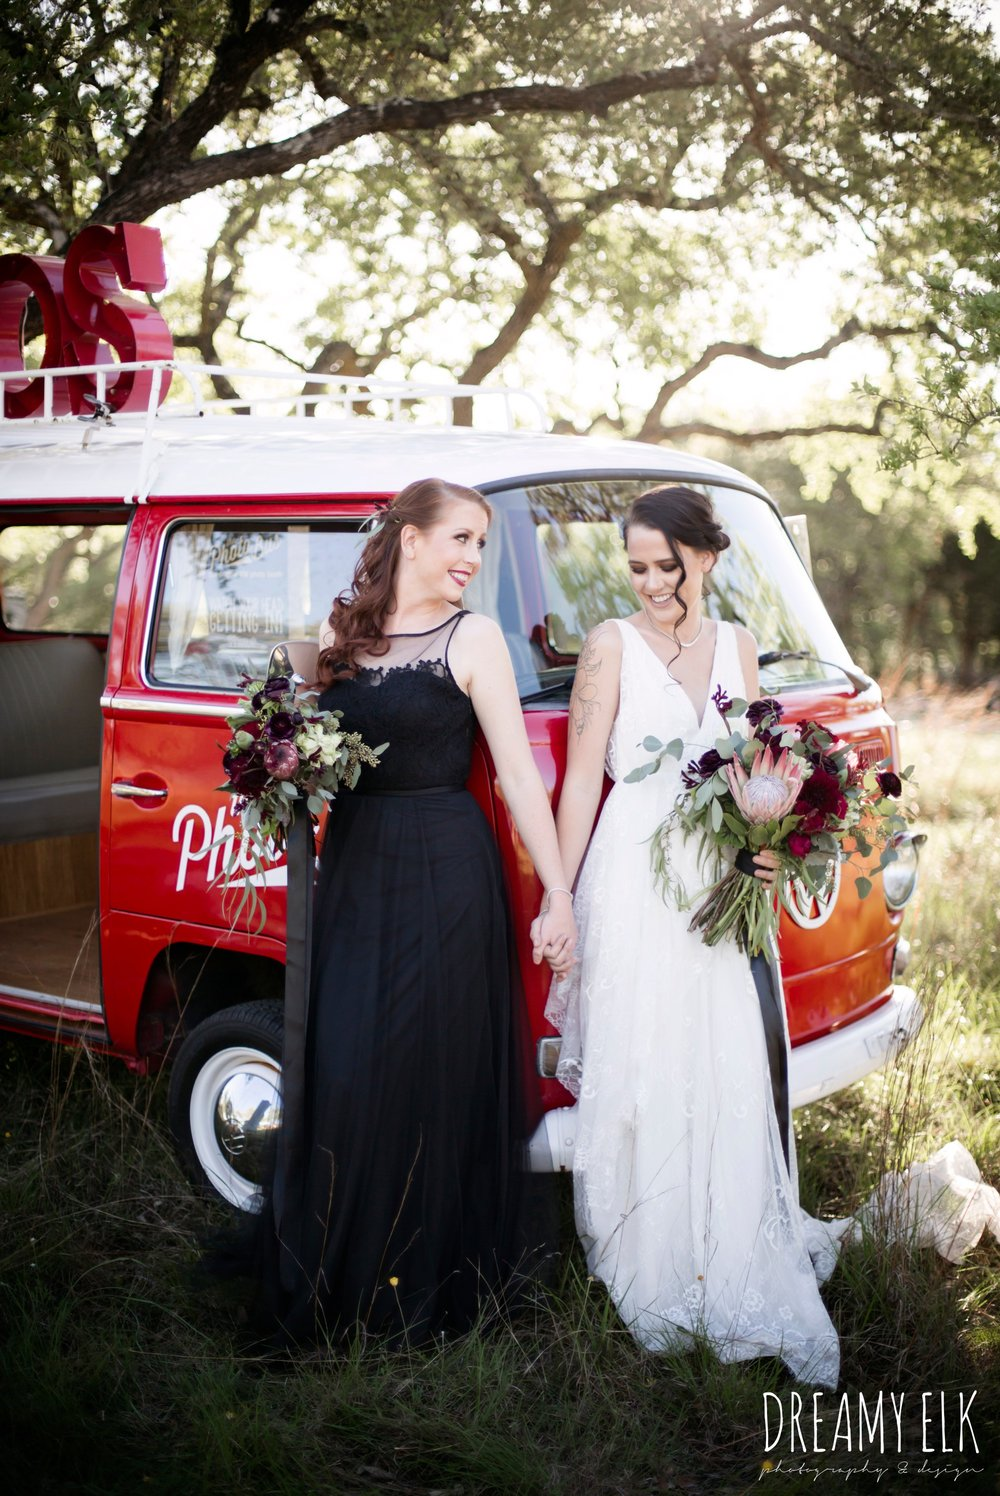 the cedars ranch, libby cole creations, saint isabel bridal, melange bridal, the photo bus, moody rich delicate marfa inspired burgundy maroon black white spring styled wedding photo shoot {dreamy elk photography and design}